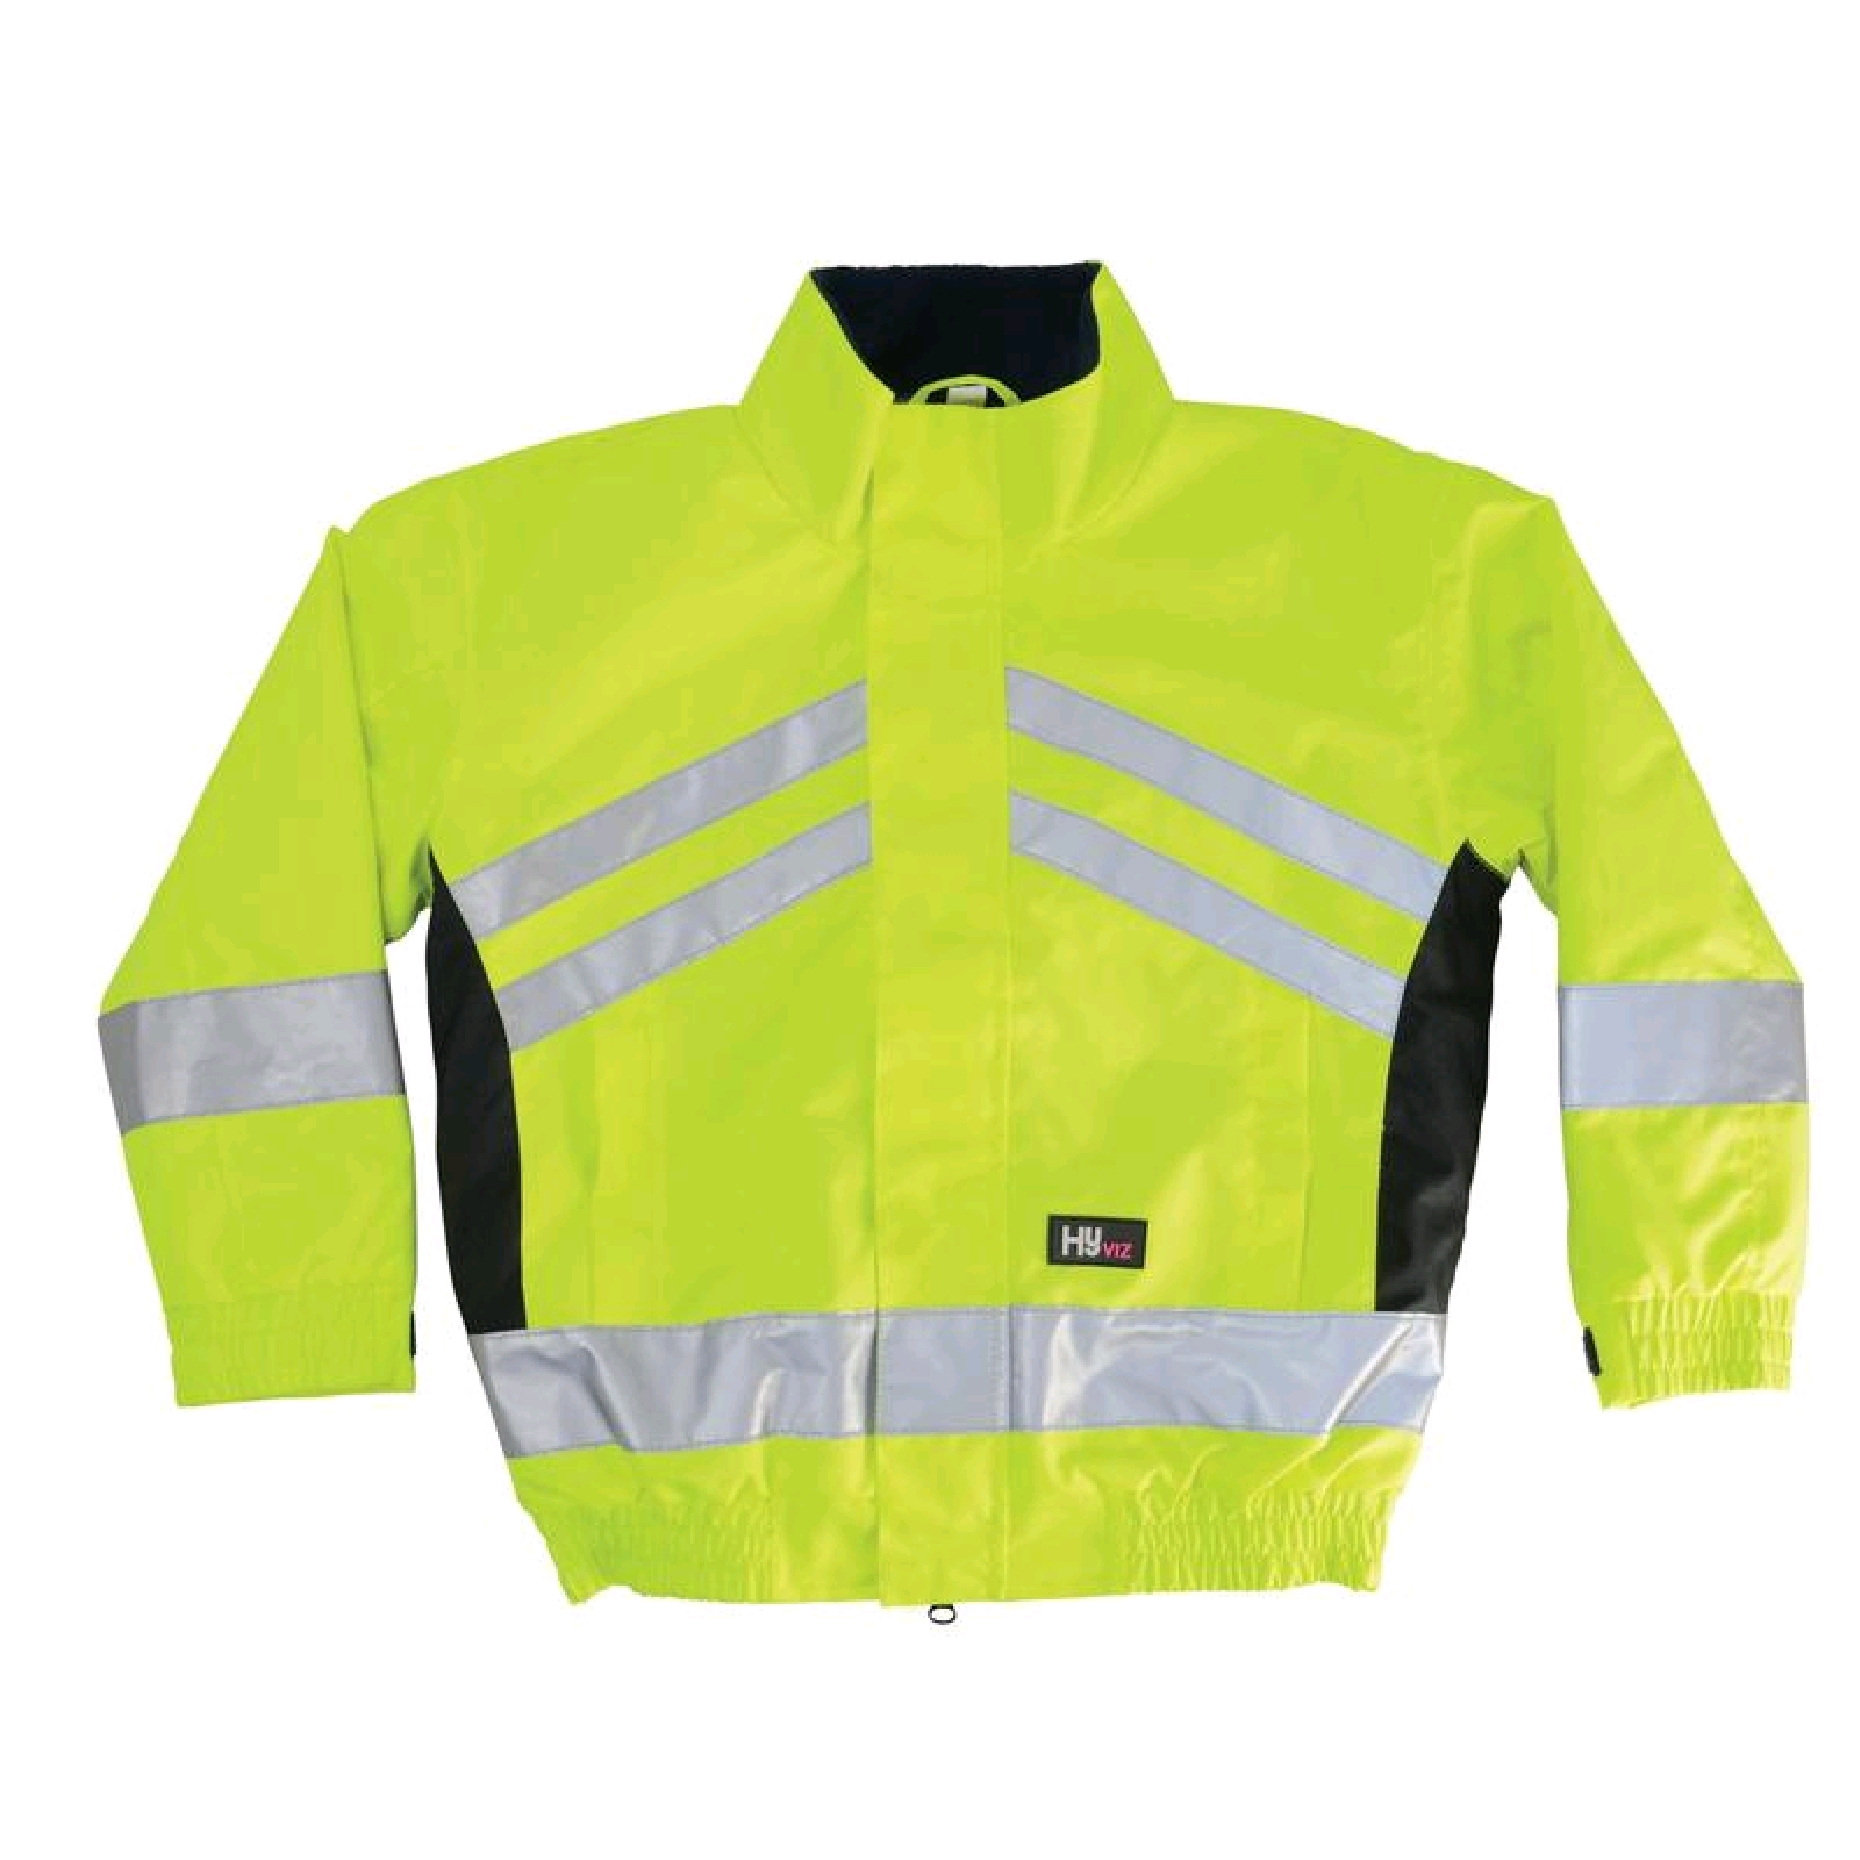 HY Viz Childs Reflective Jacket